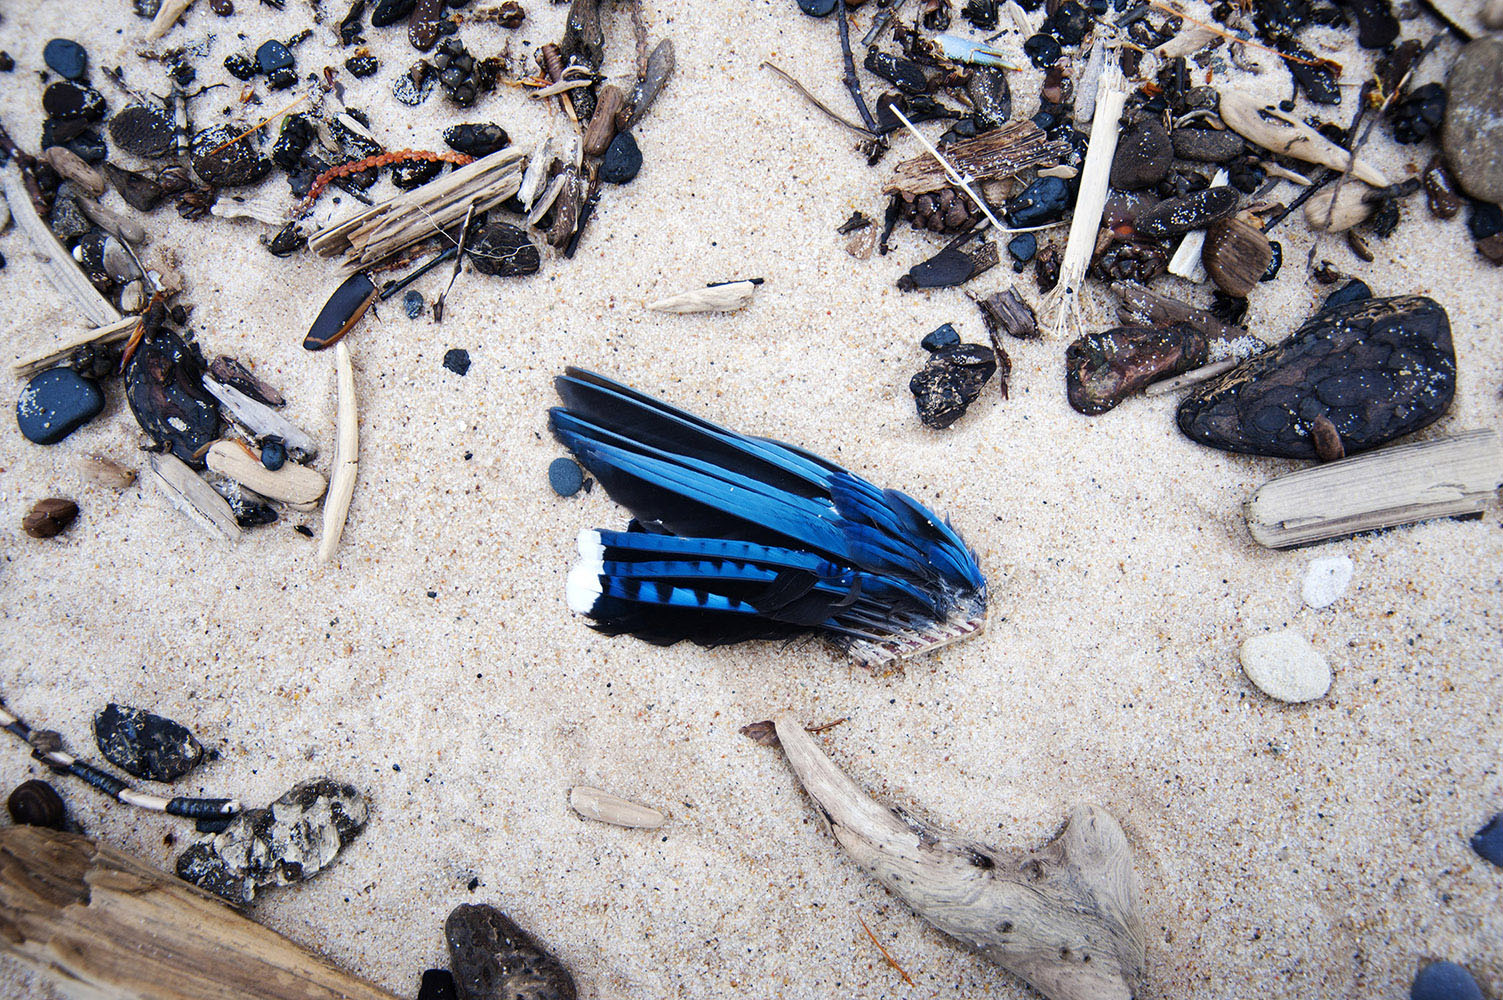 Blue Jay wing in the sand